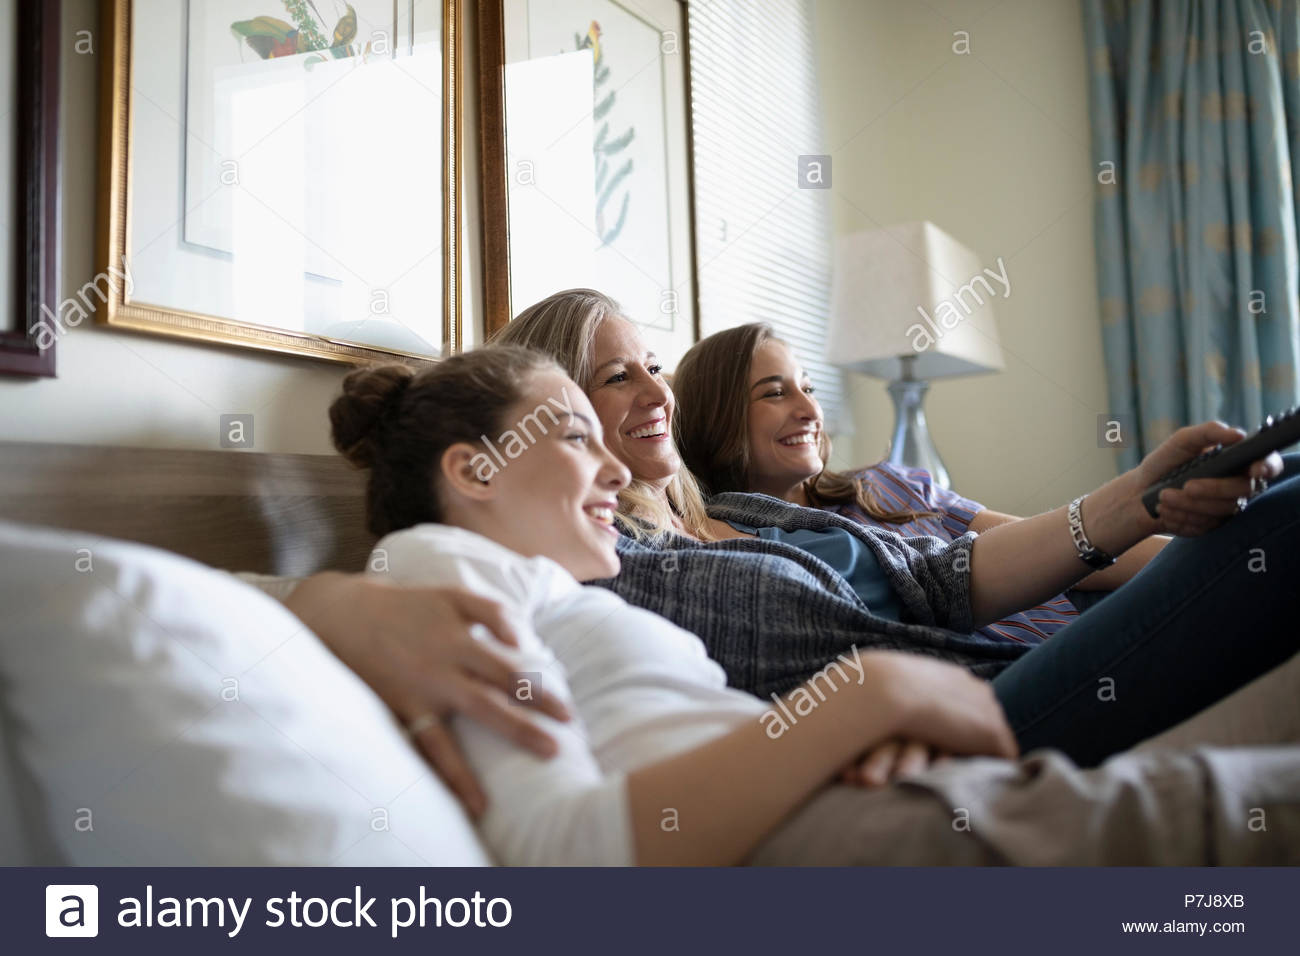 Tendre mère et filles adolescentes en regardant la télé on bed Photo Stock